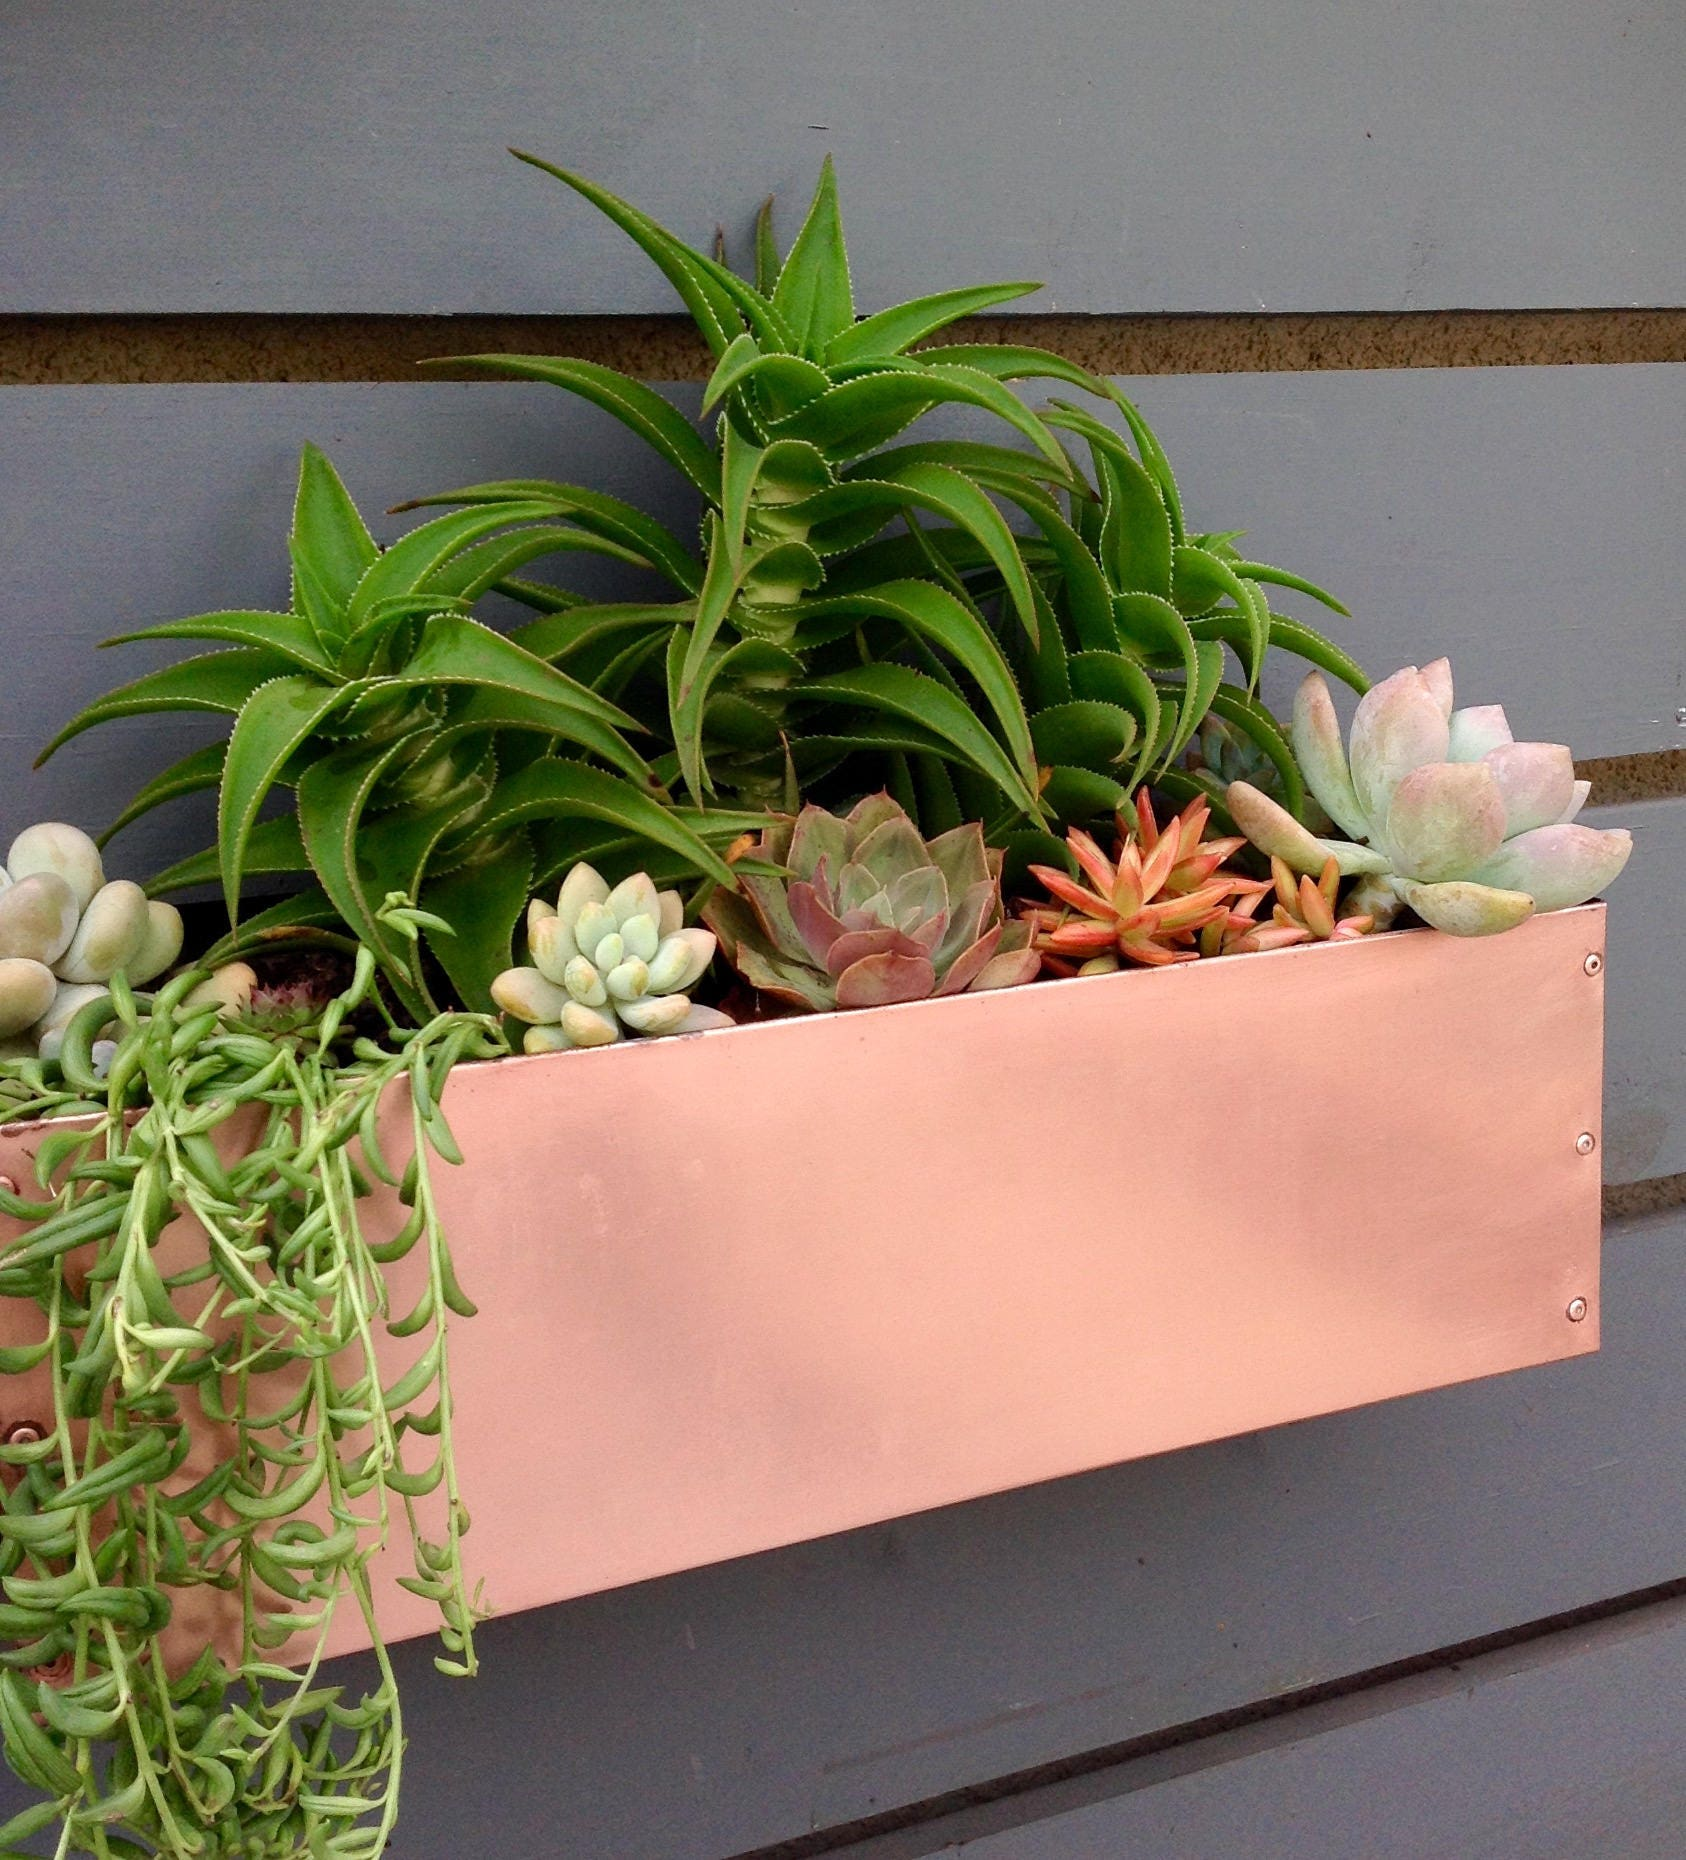 zoom Copper Hanging Planter Box Horizontal Fence